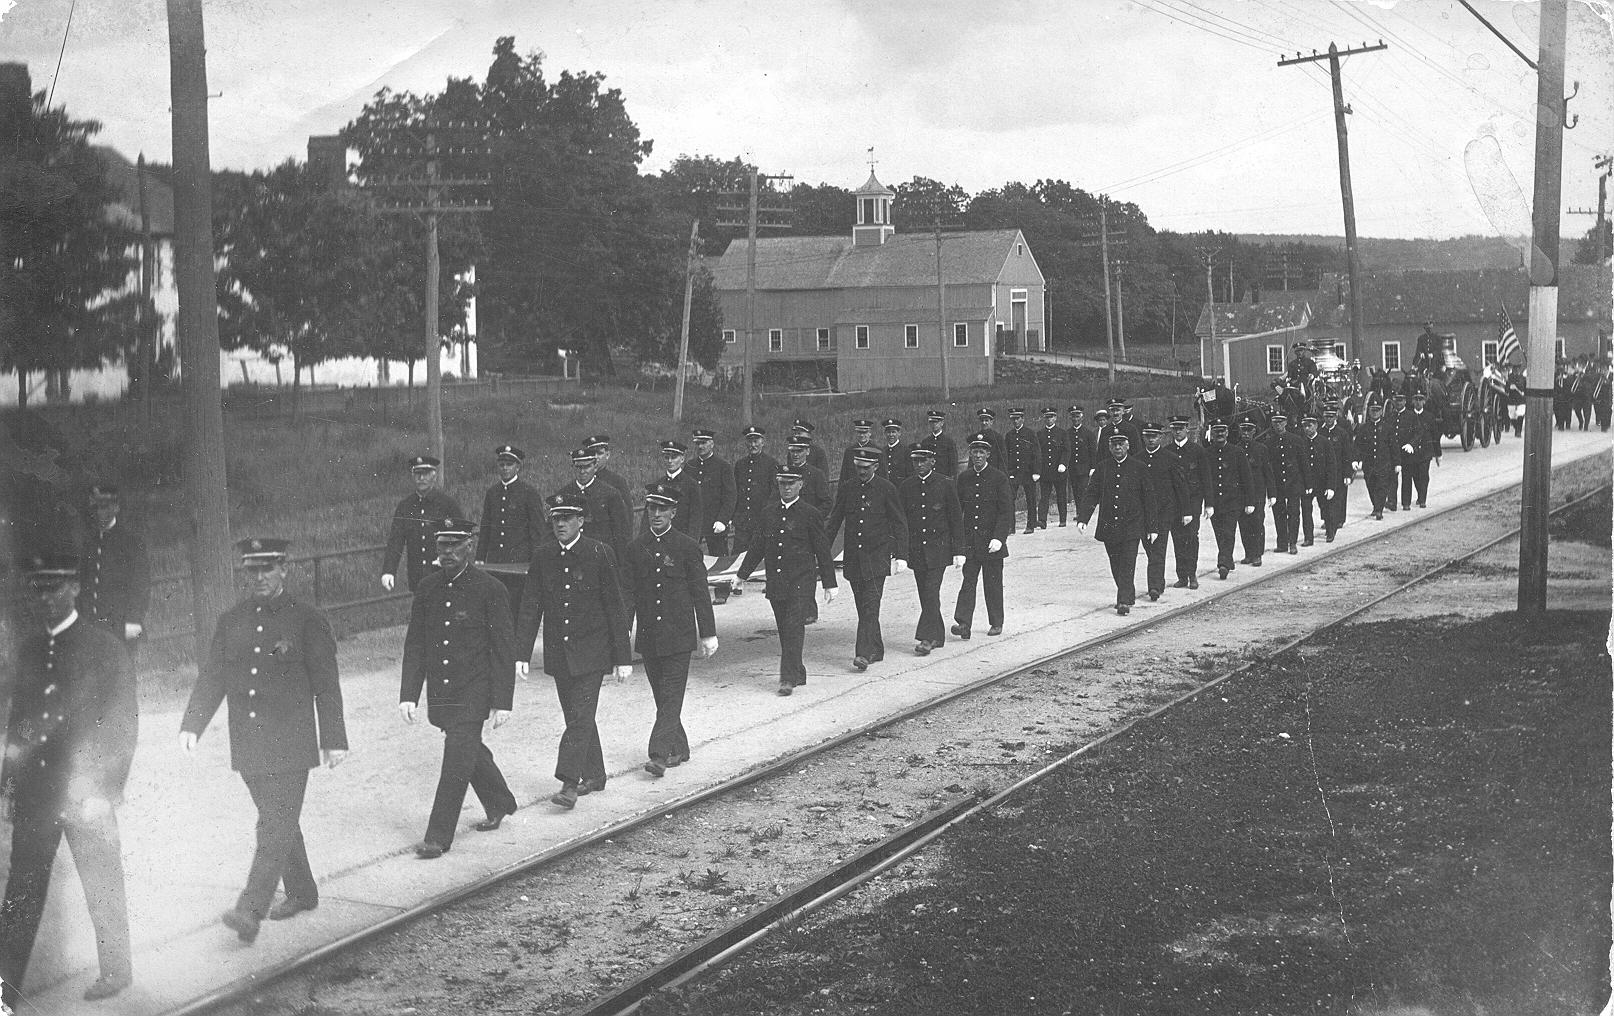 Thompson Firemen in 1919 Parade celebrating the end of World War I, Grosvenordale, CT